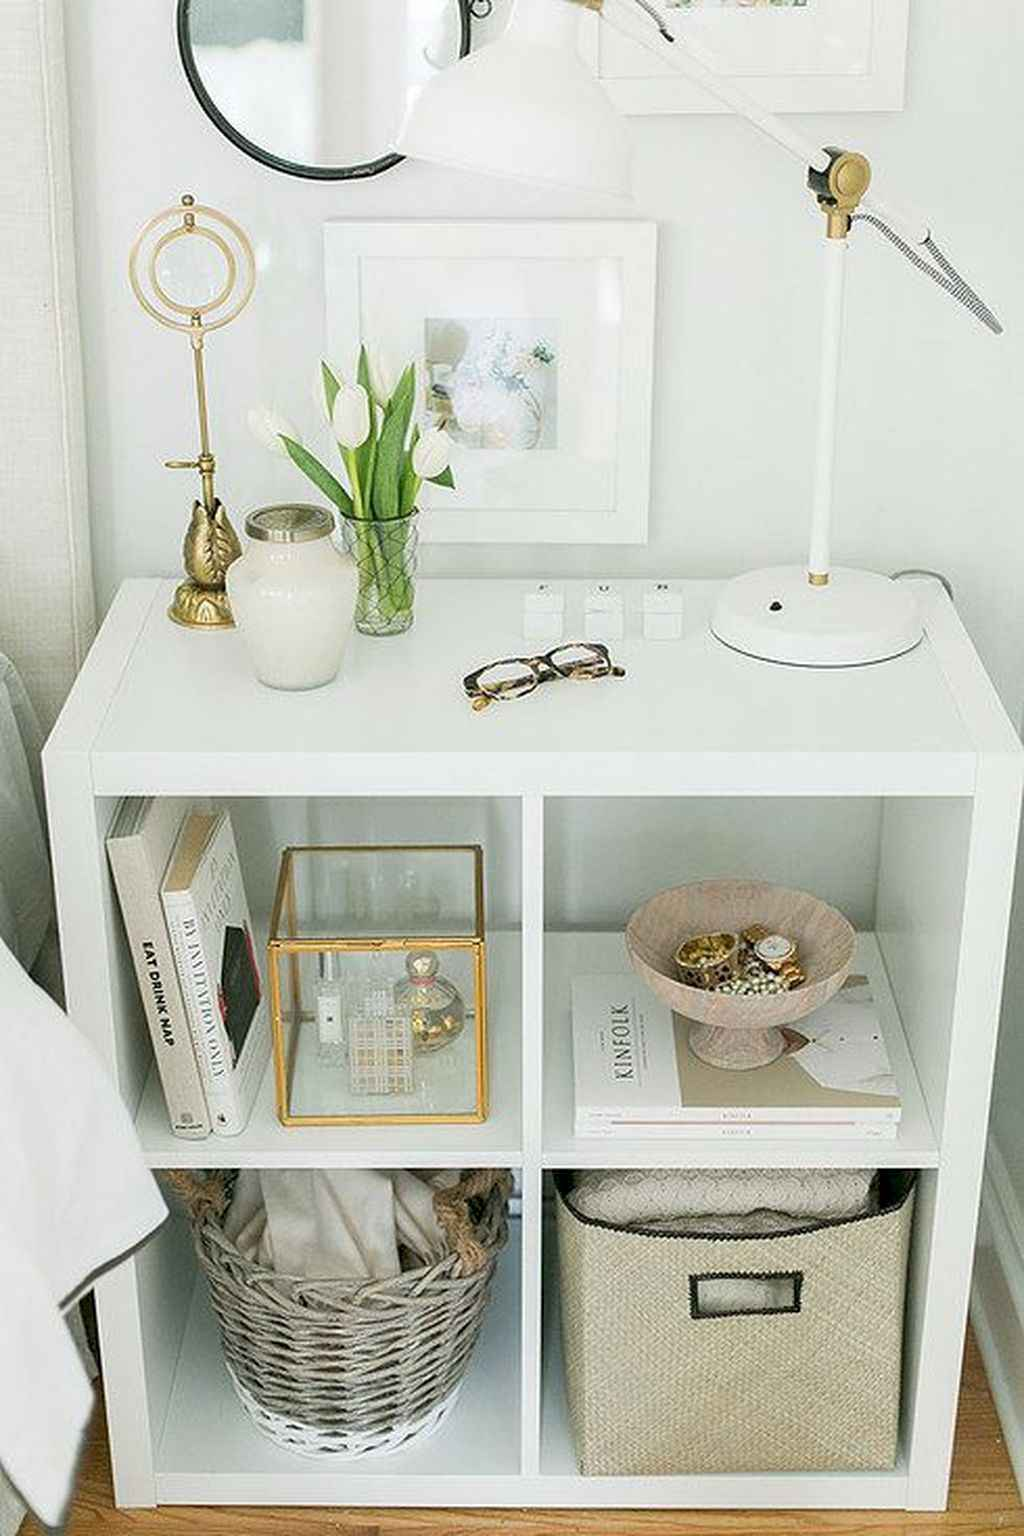 Clever college apartment decorating ideas on a budget (23)